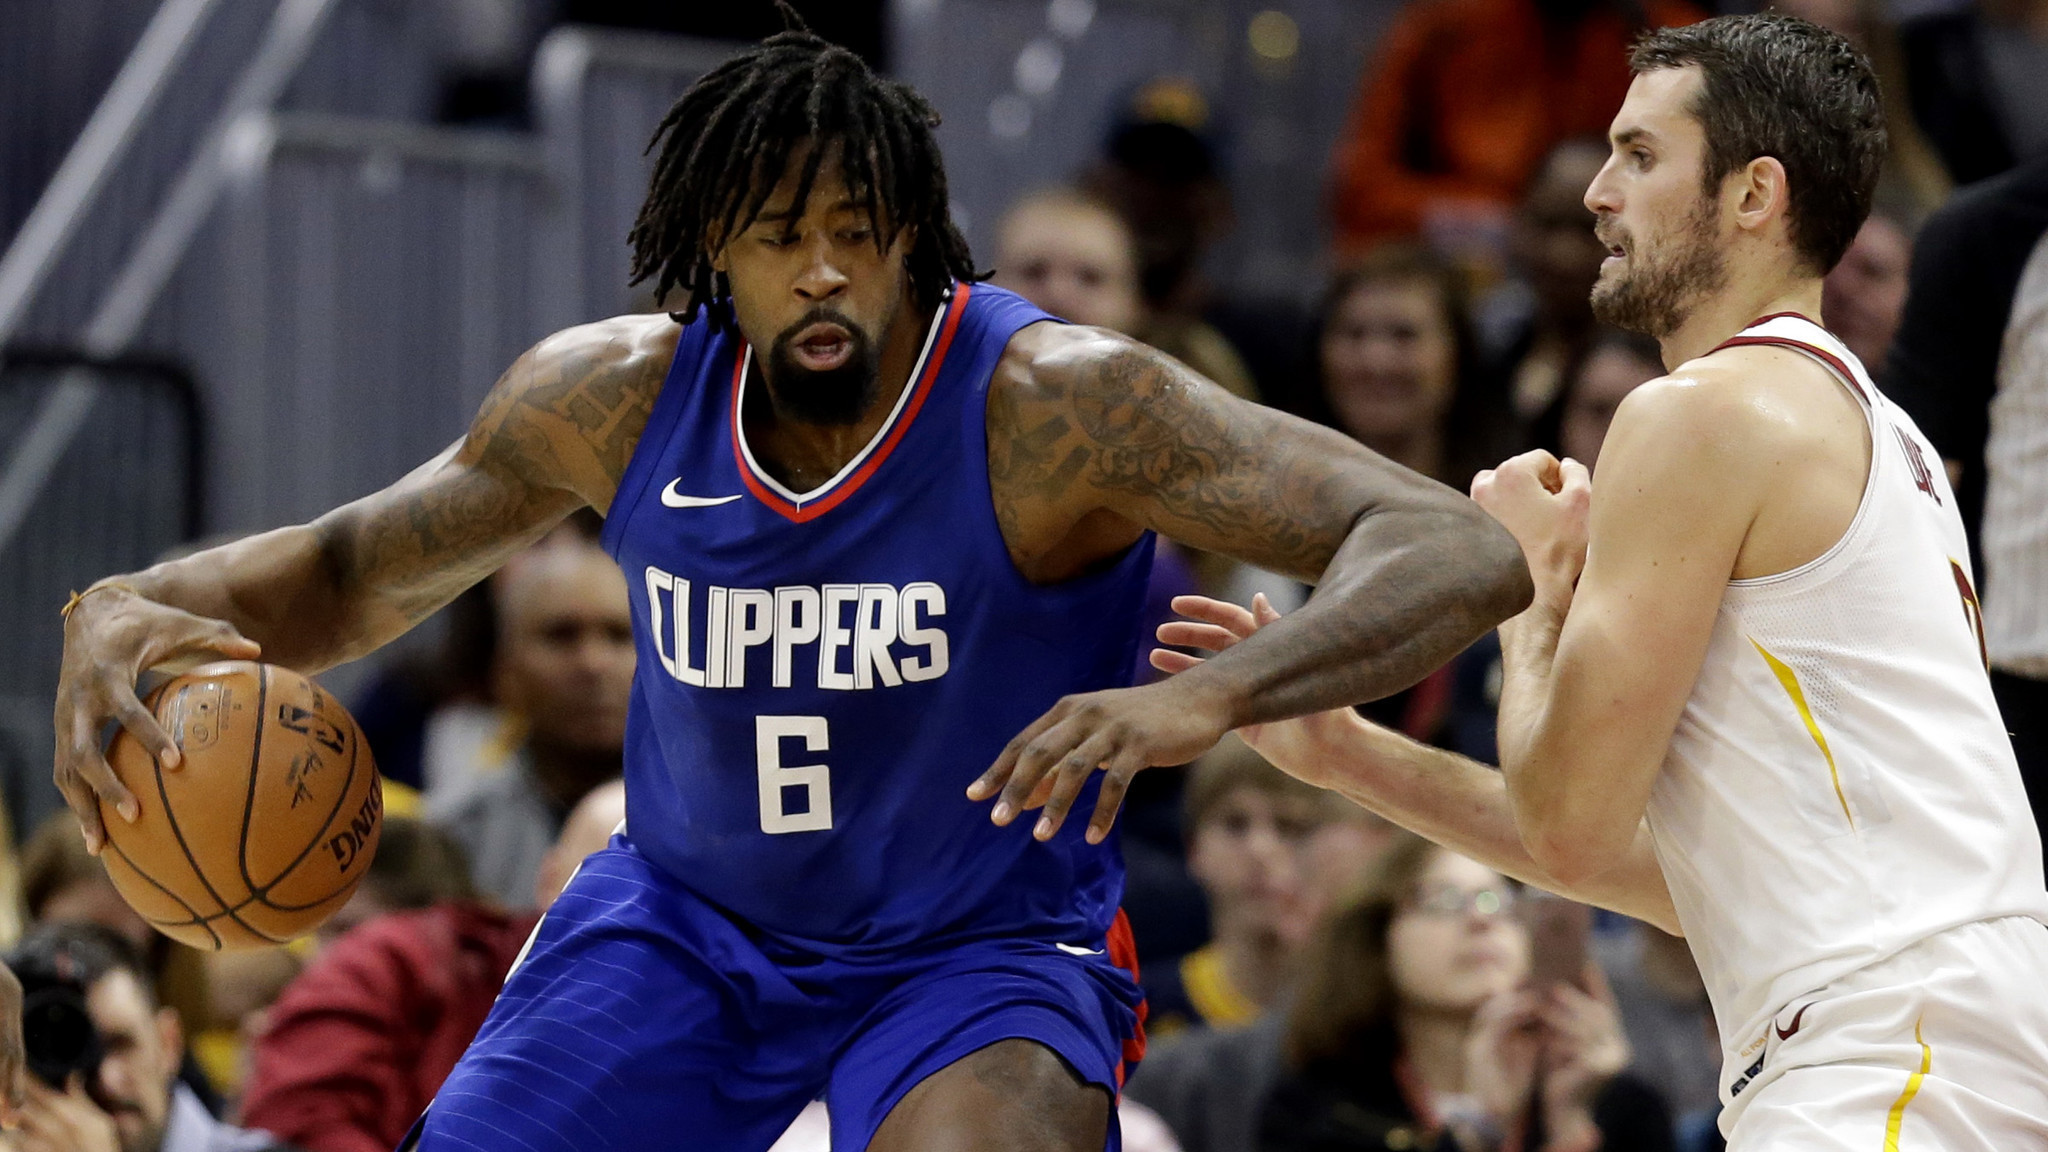 La-sp-clippers-takeaways-20171118